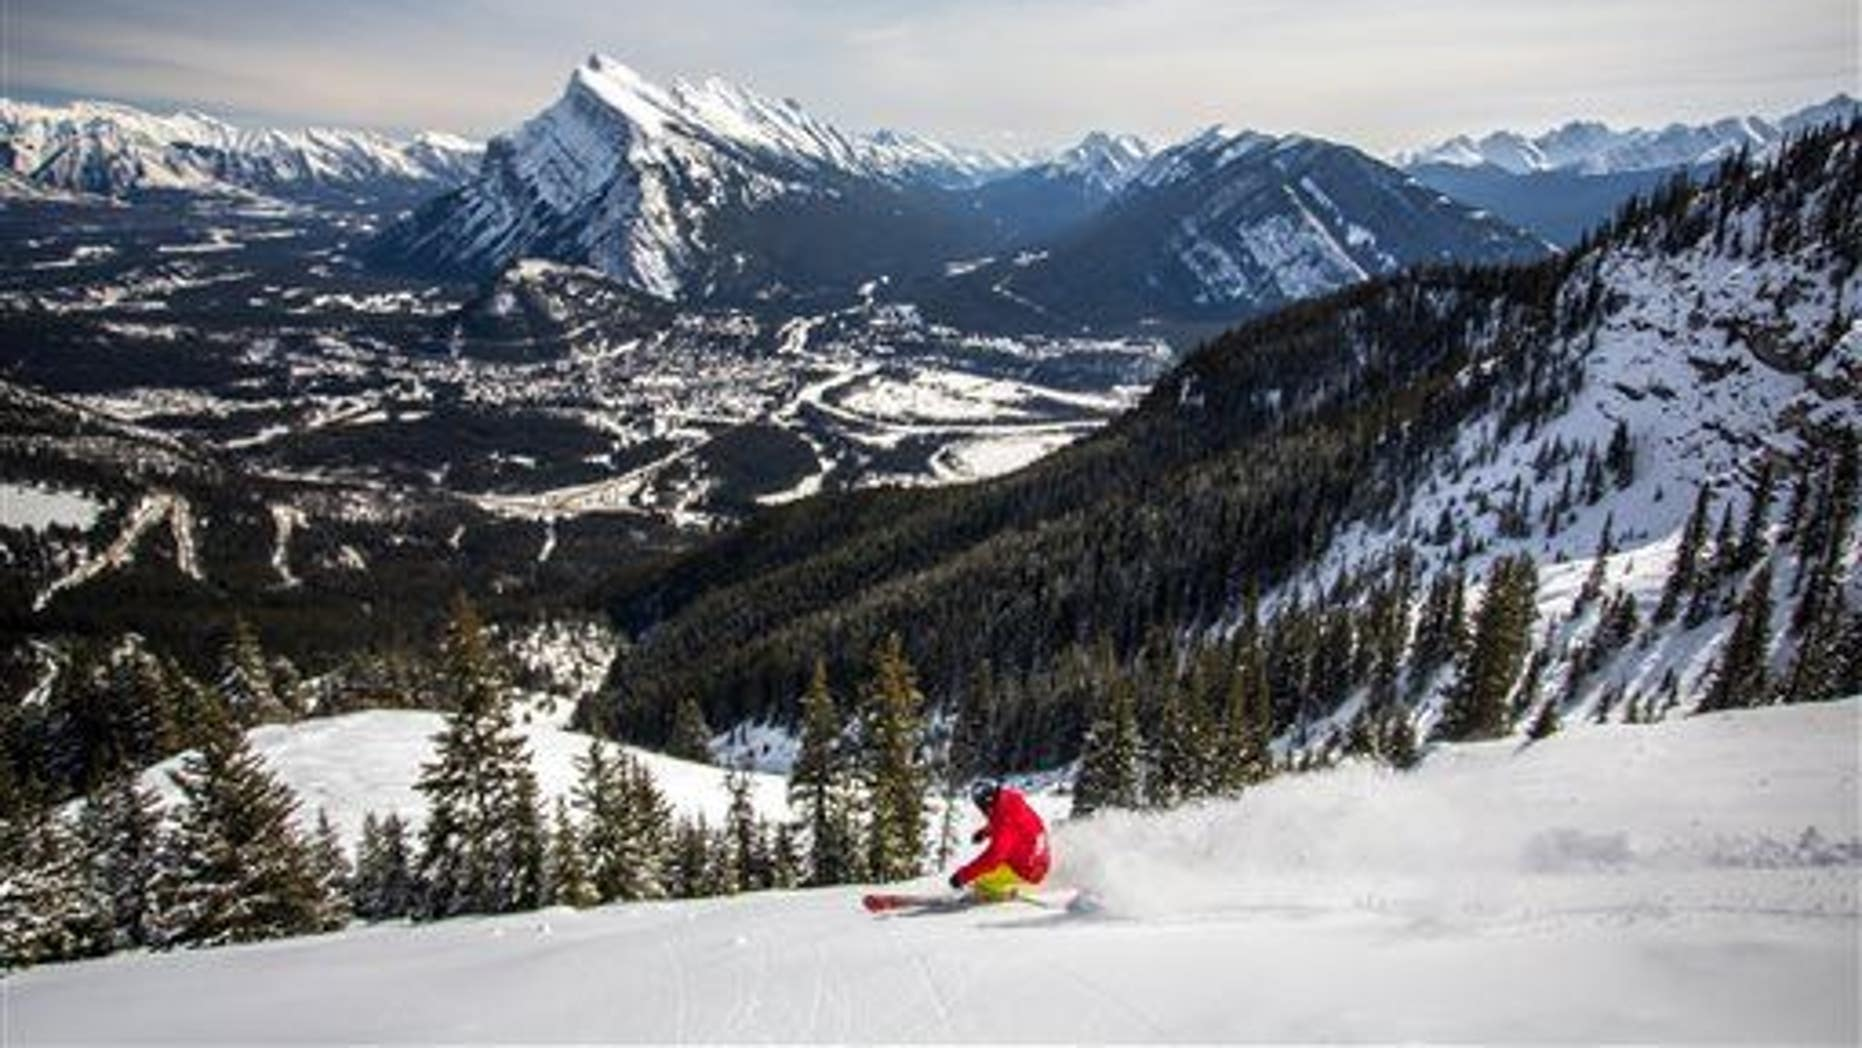 A snowboarder on the mountain in the Canadian Rockies, just 15 minutes from Banff, Alberta.